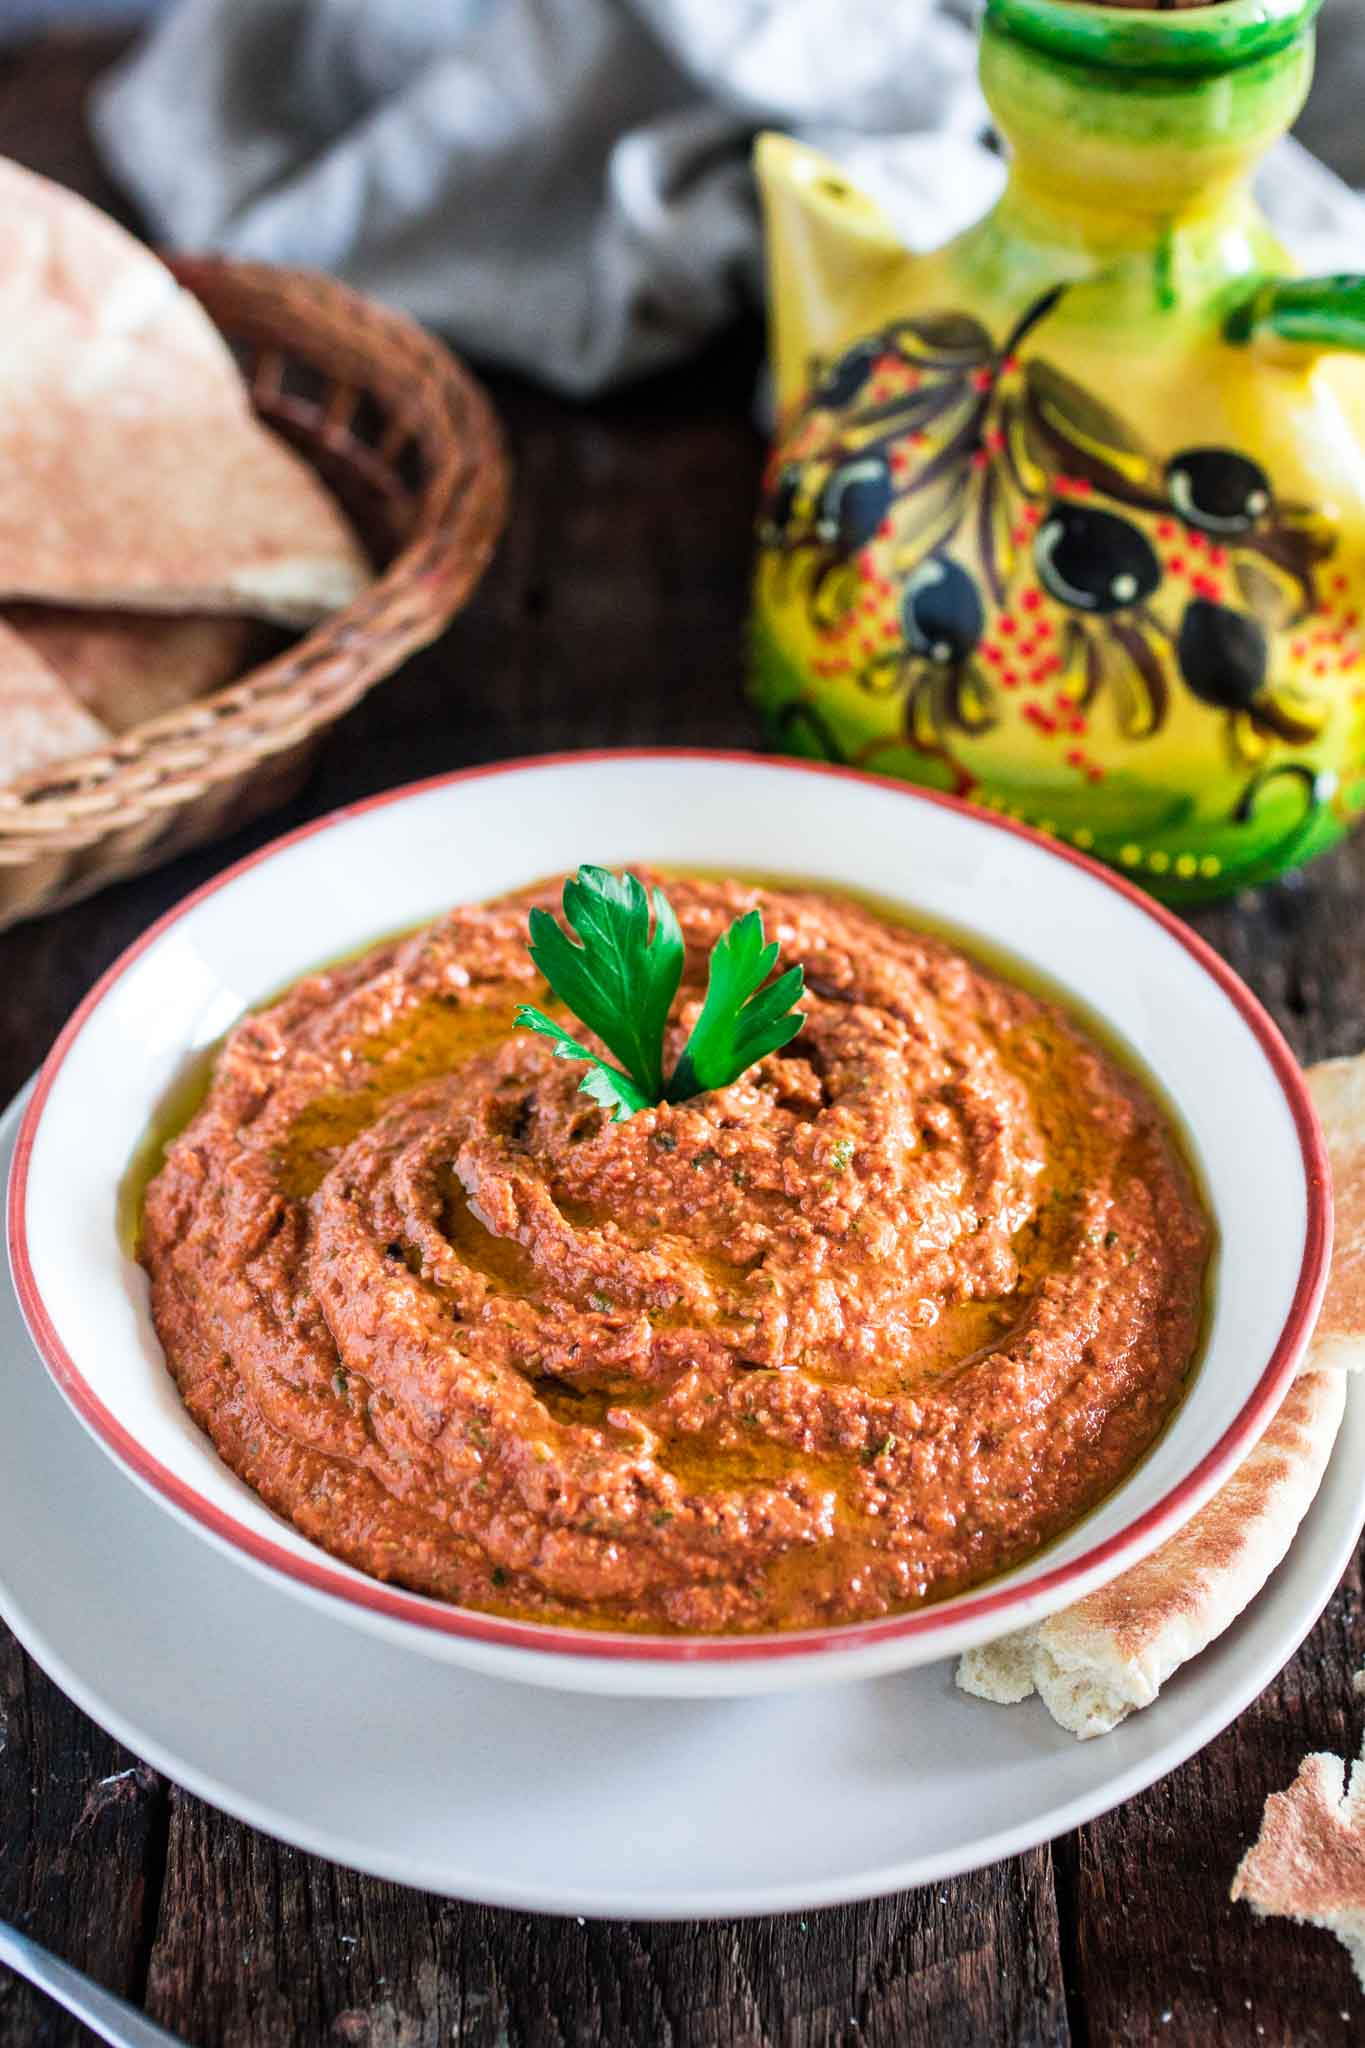 Muhammara (Red Pepper and Walnut Dip)   www.oliviascuisine.com   A middle eastern spread made with roasted red peppers, toasted walnuts, scallions, spices, breadcrumbs, olive oil and pomegranate molasses. It's a delicious sweet and spicy dip and a great alternative to hummus! (In partnership with Mezzetta.)